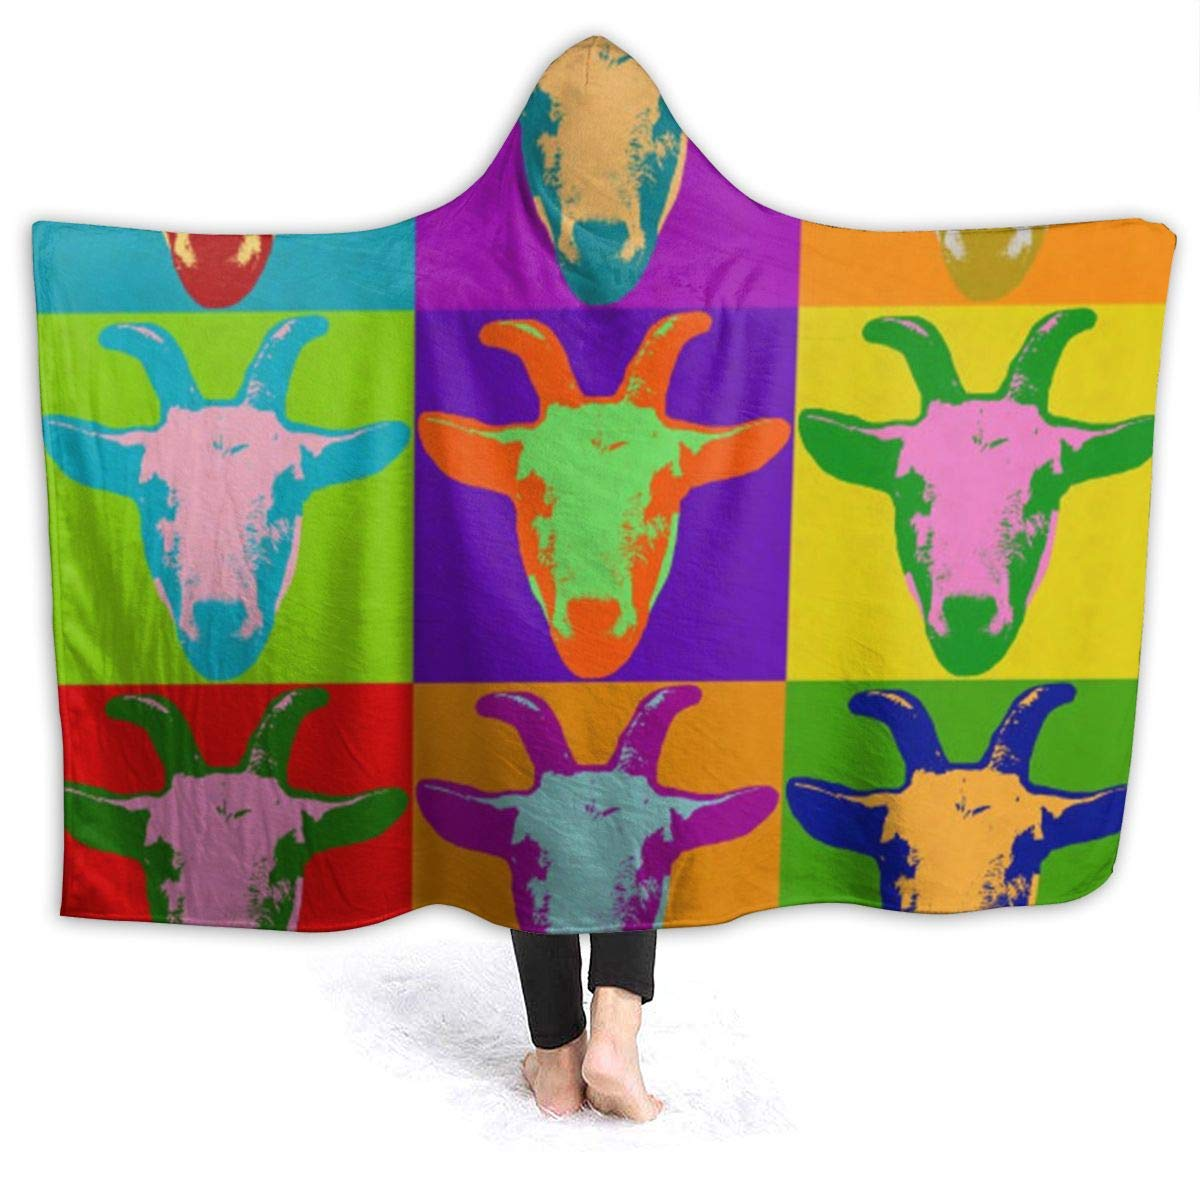 NiYoung 3D Printed Hooded Blanket Soft Blankets for Adults Sherpa Fleece Winter Throw Blanket Hoodie Blanket Colorful Goat Head Travel Cloak, Adult - 60x80 inch by NiYoung